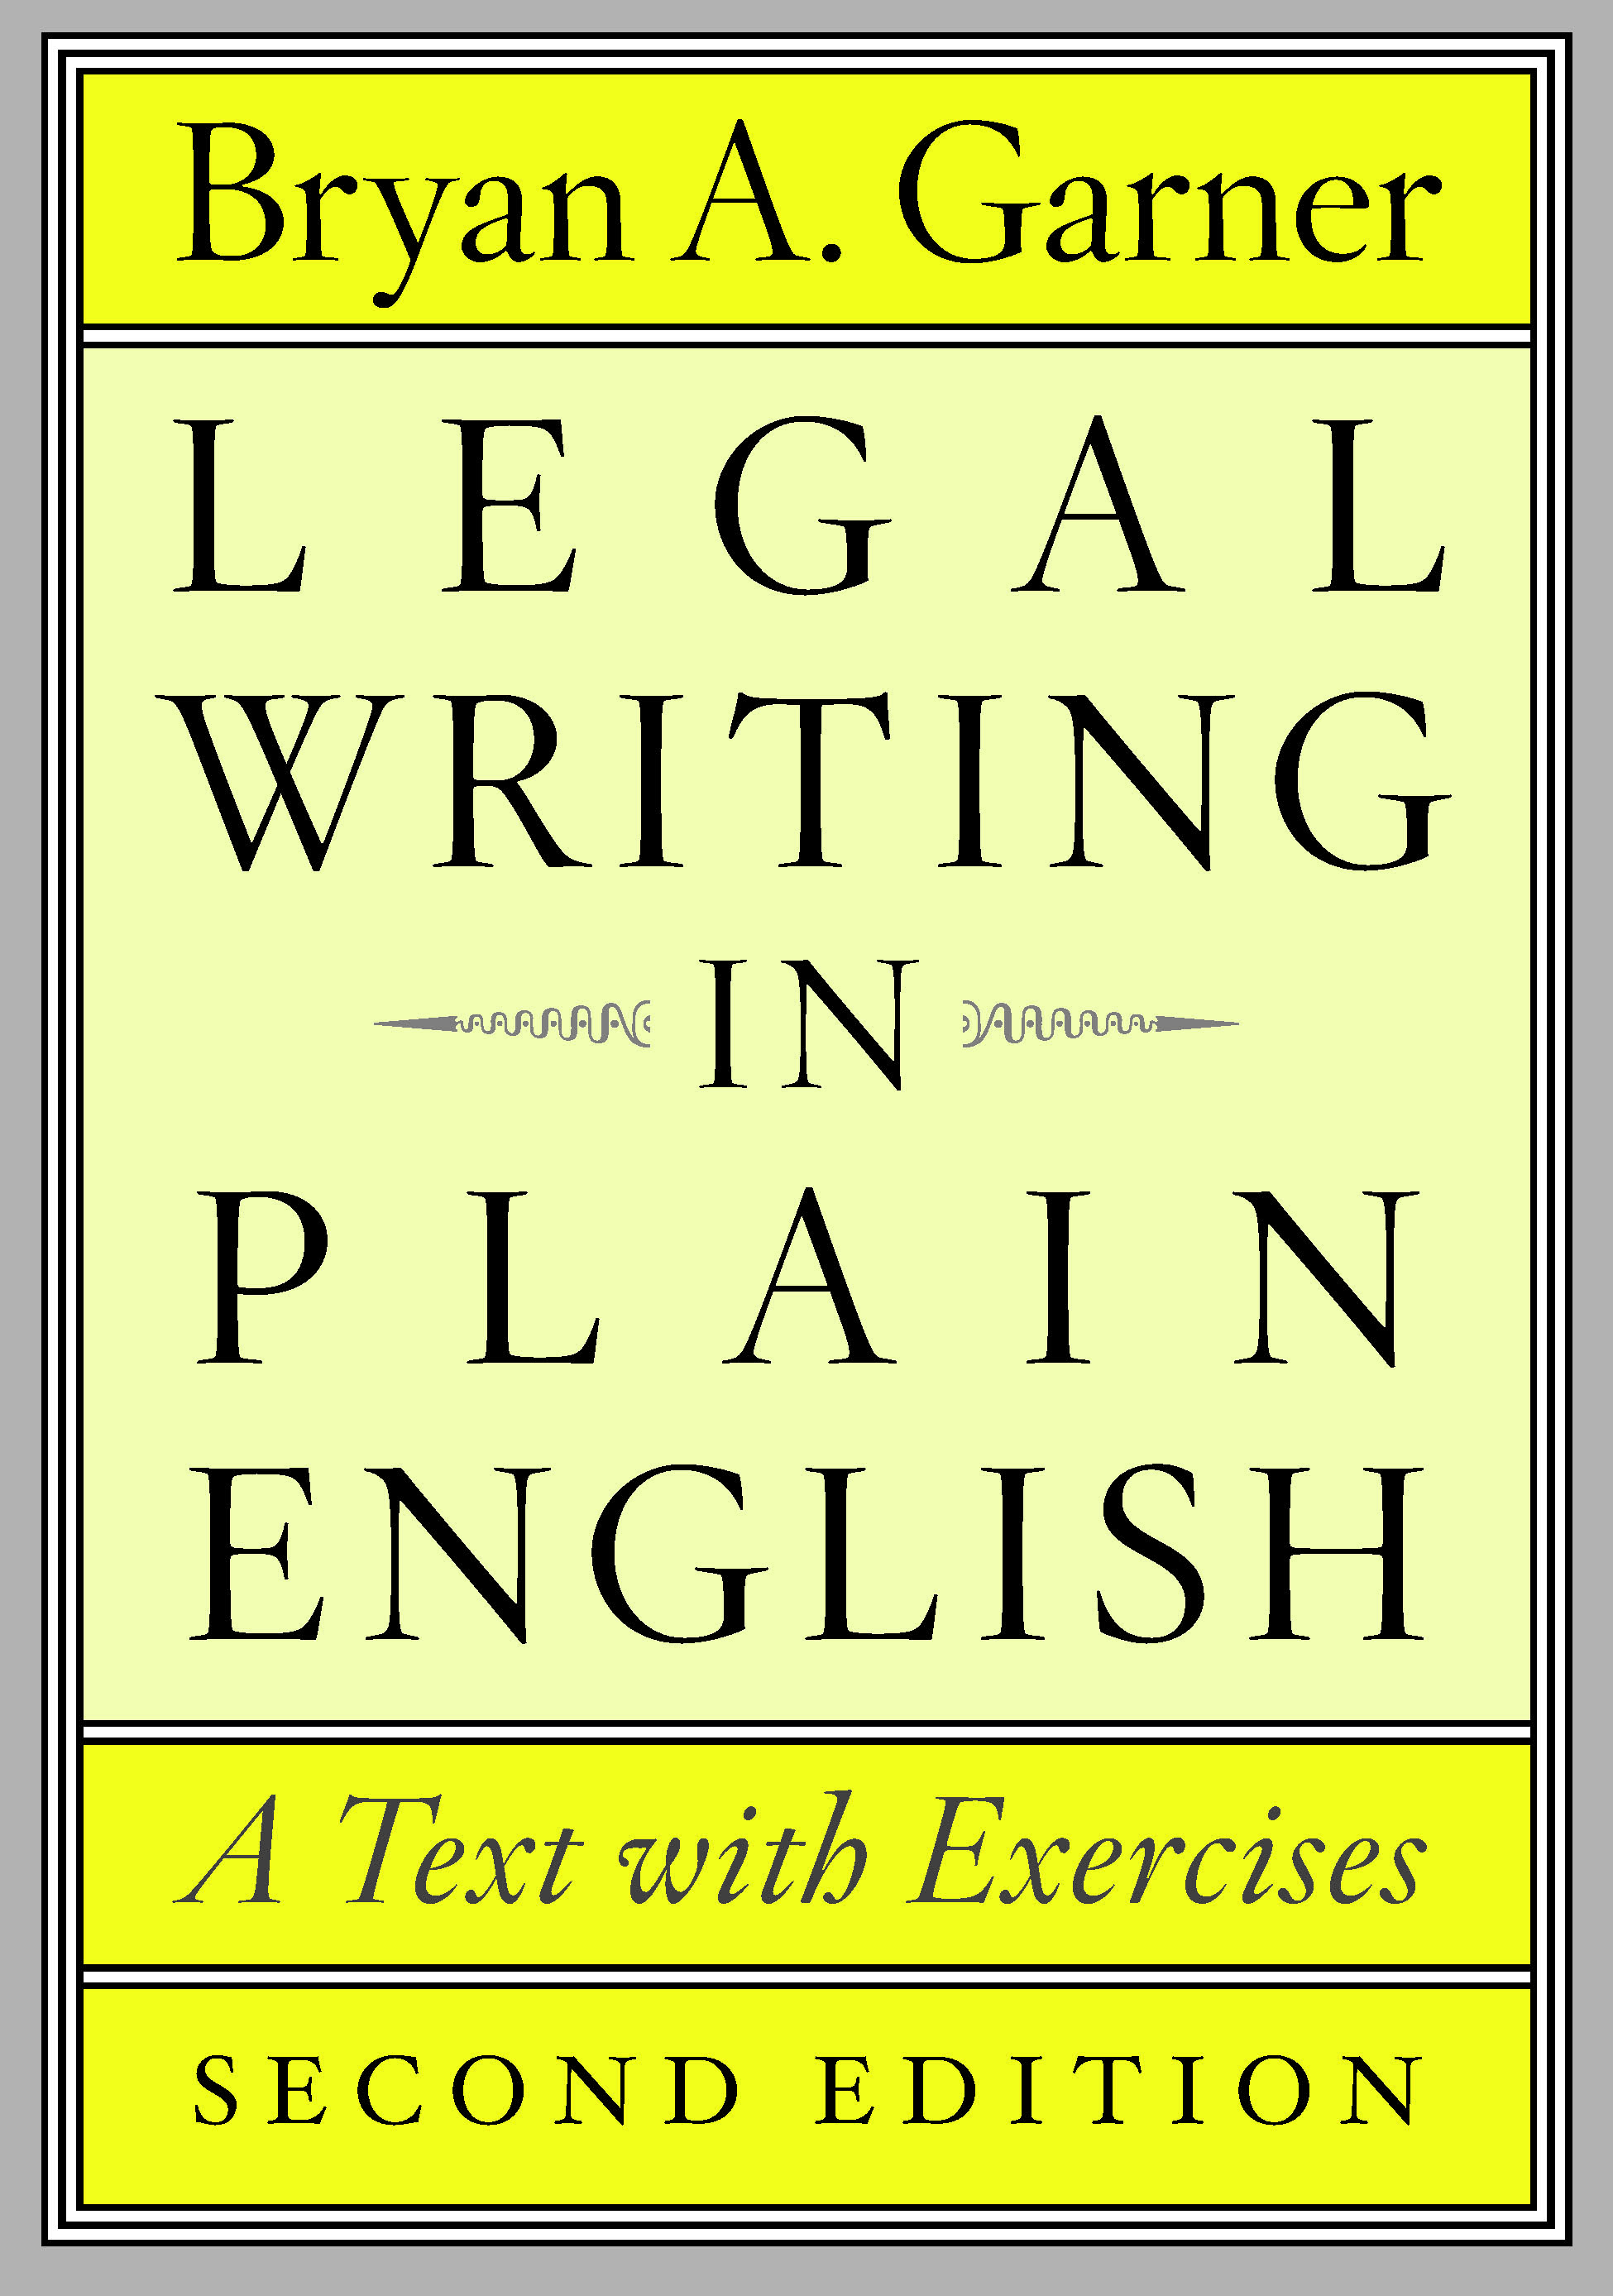 Garner legal writing